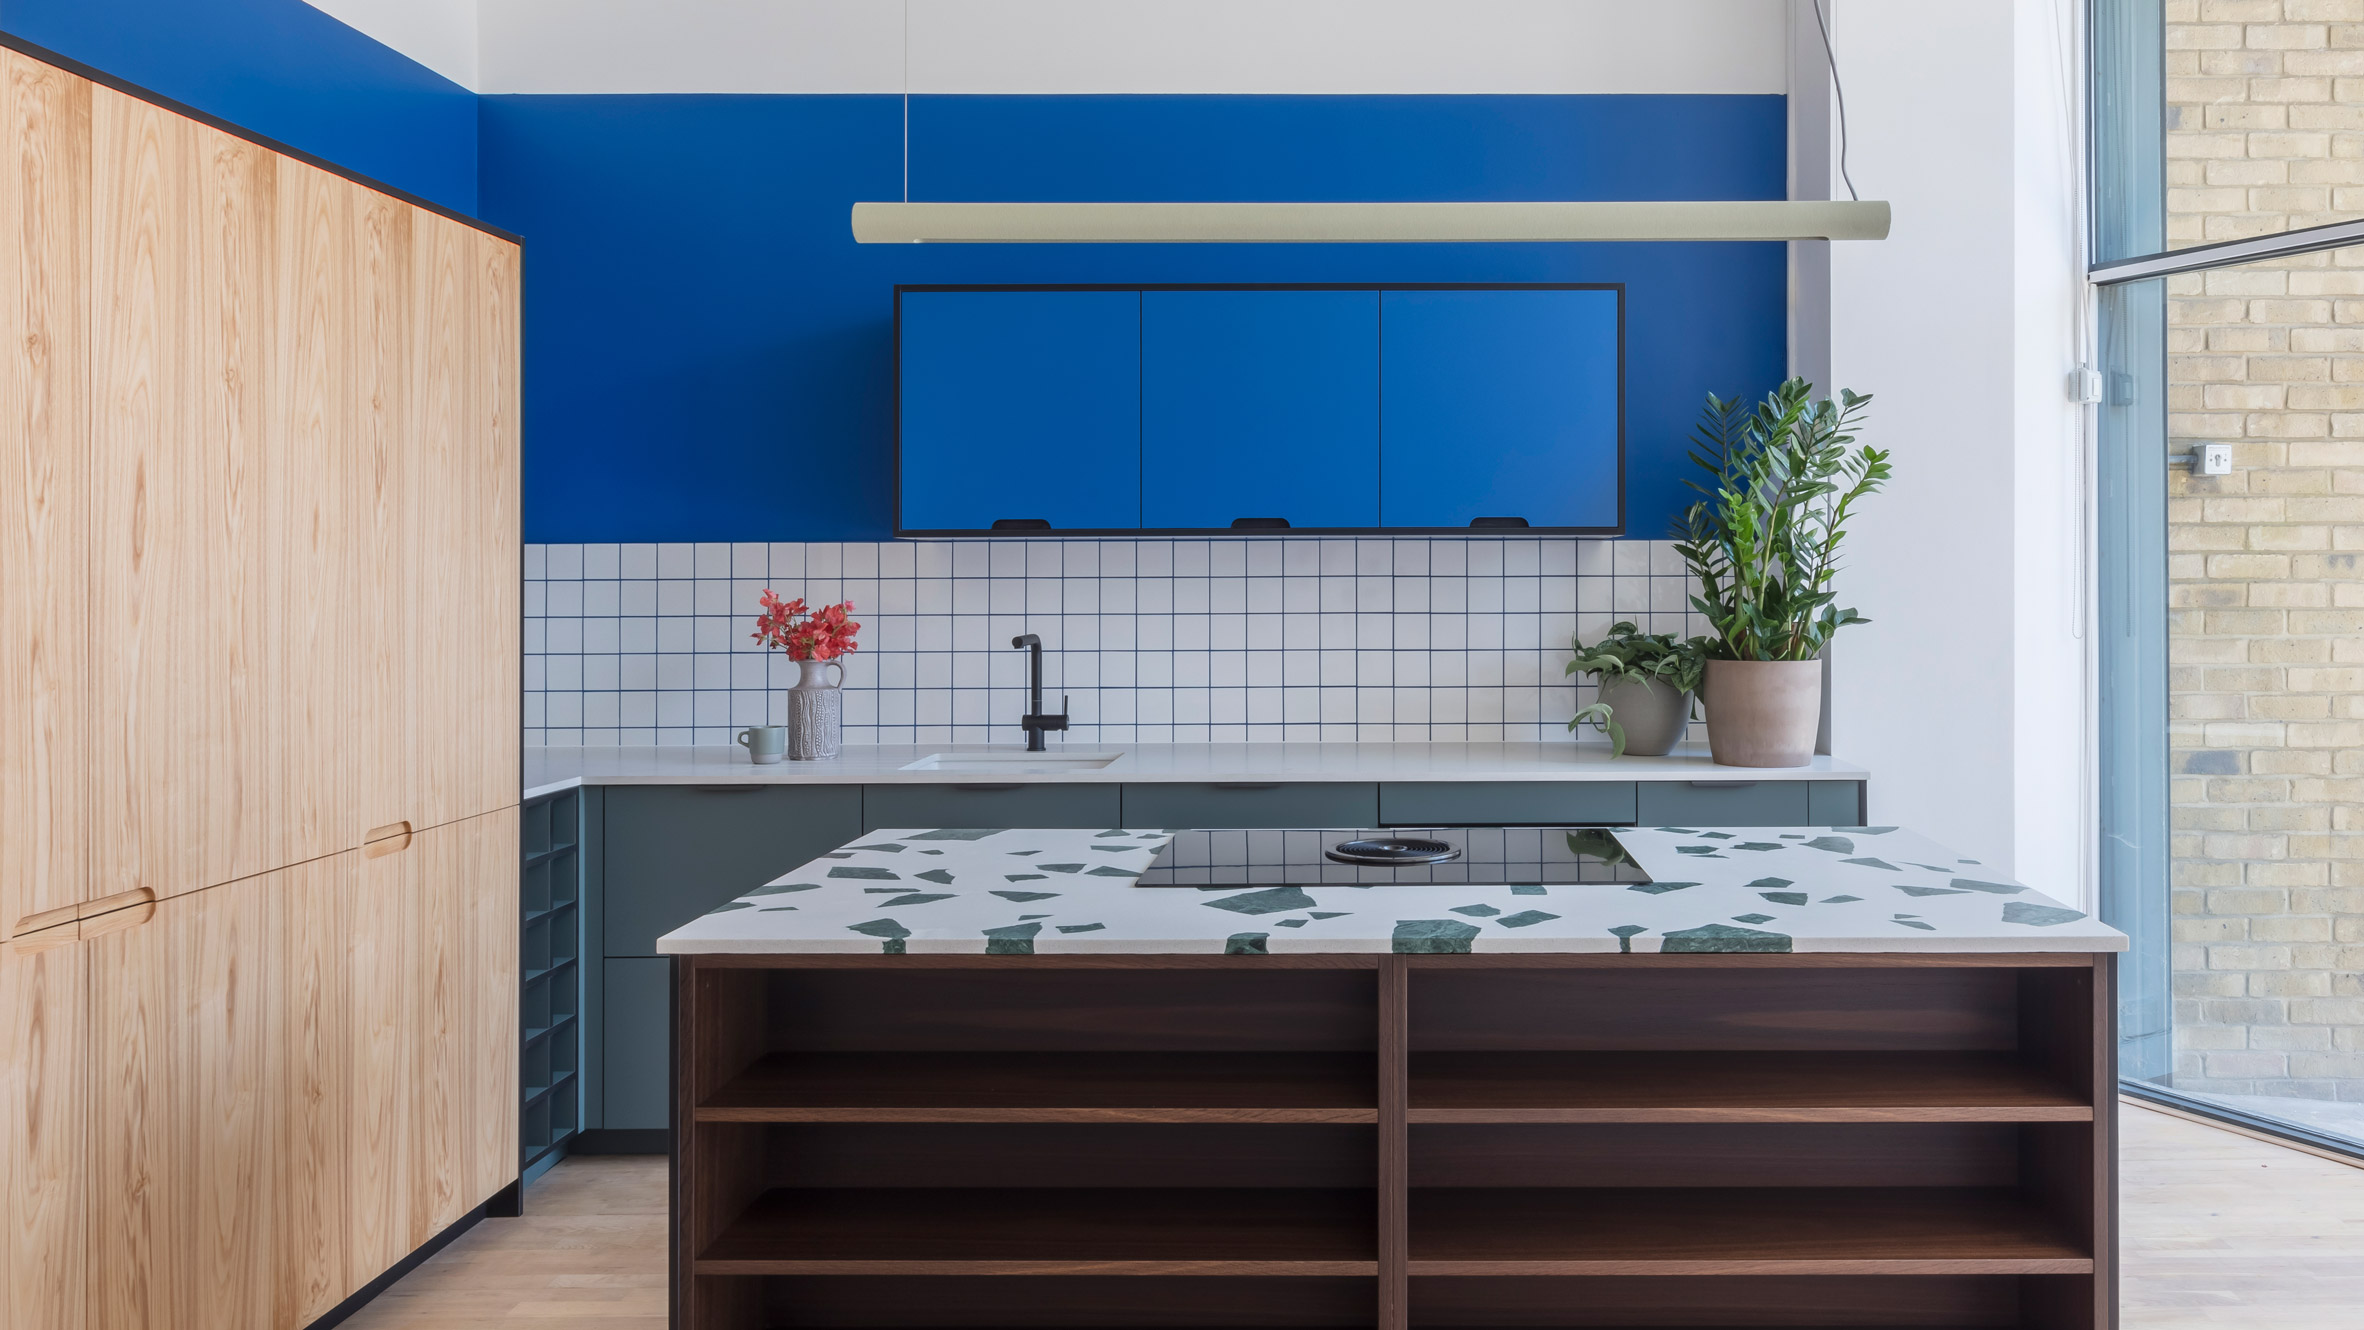 Incredible Holte Opens Hackney Design Studio For Customising Ikea Kitchens Interior Design Ideas Tzicisoteloinfo